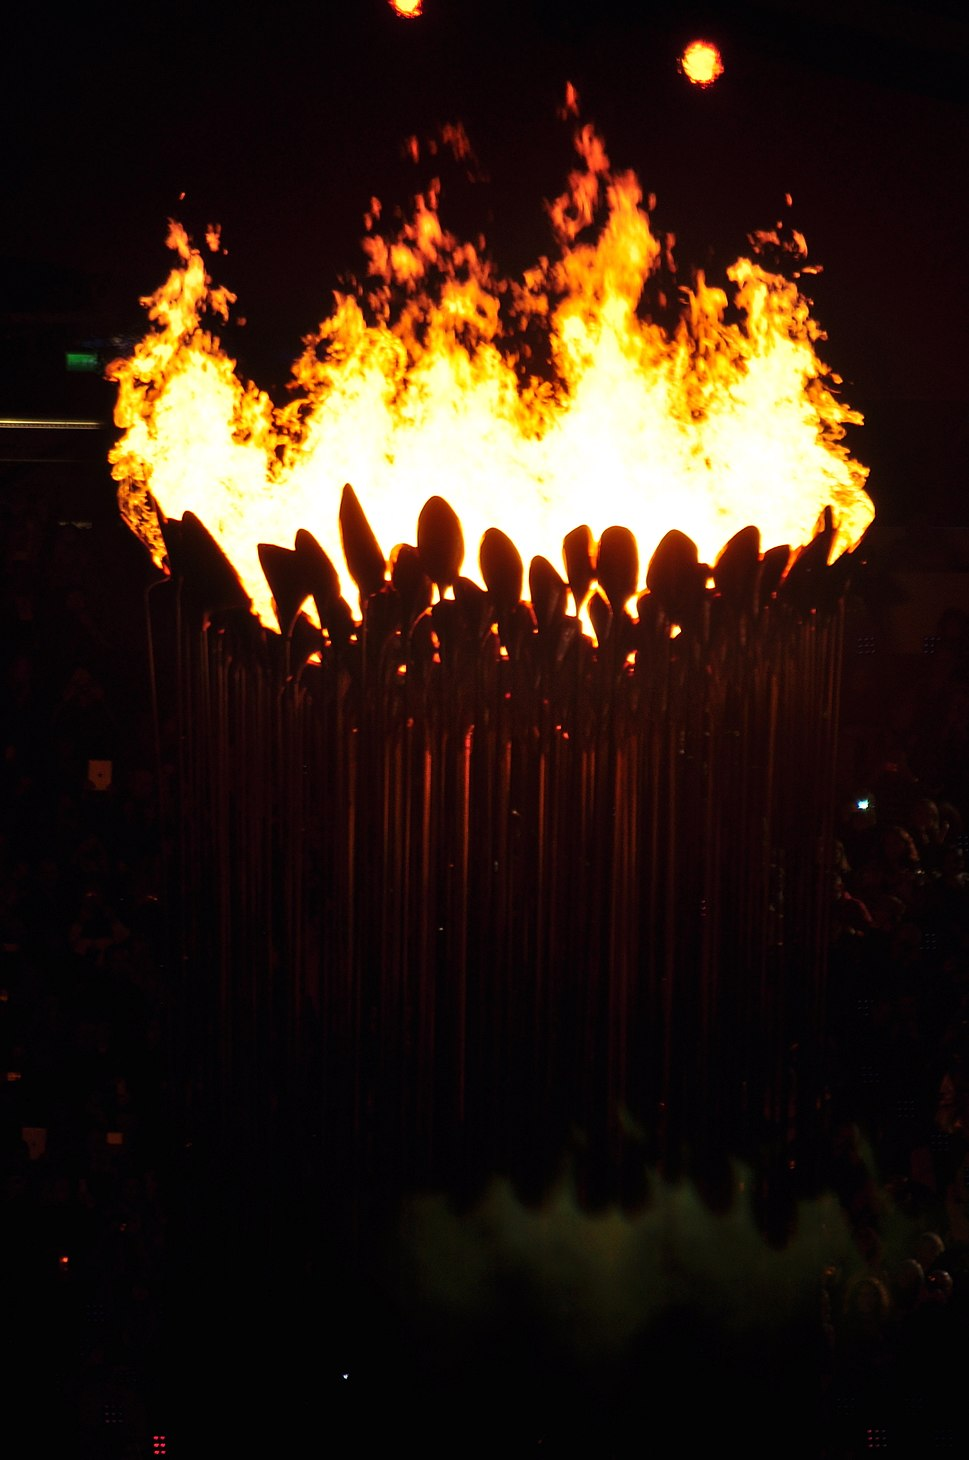 Paralympic flames